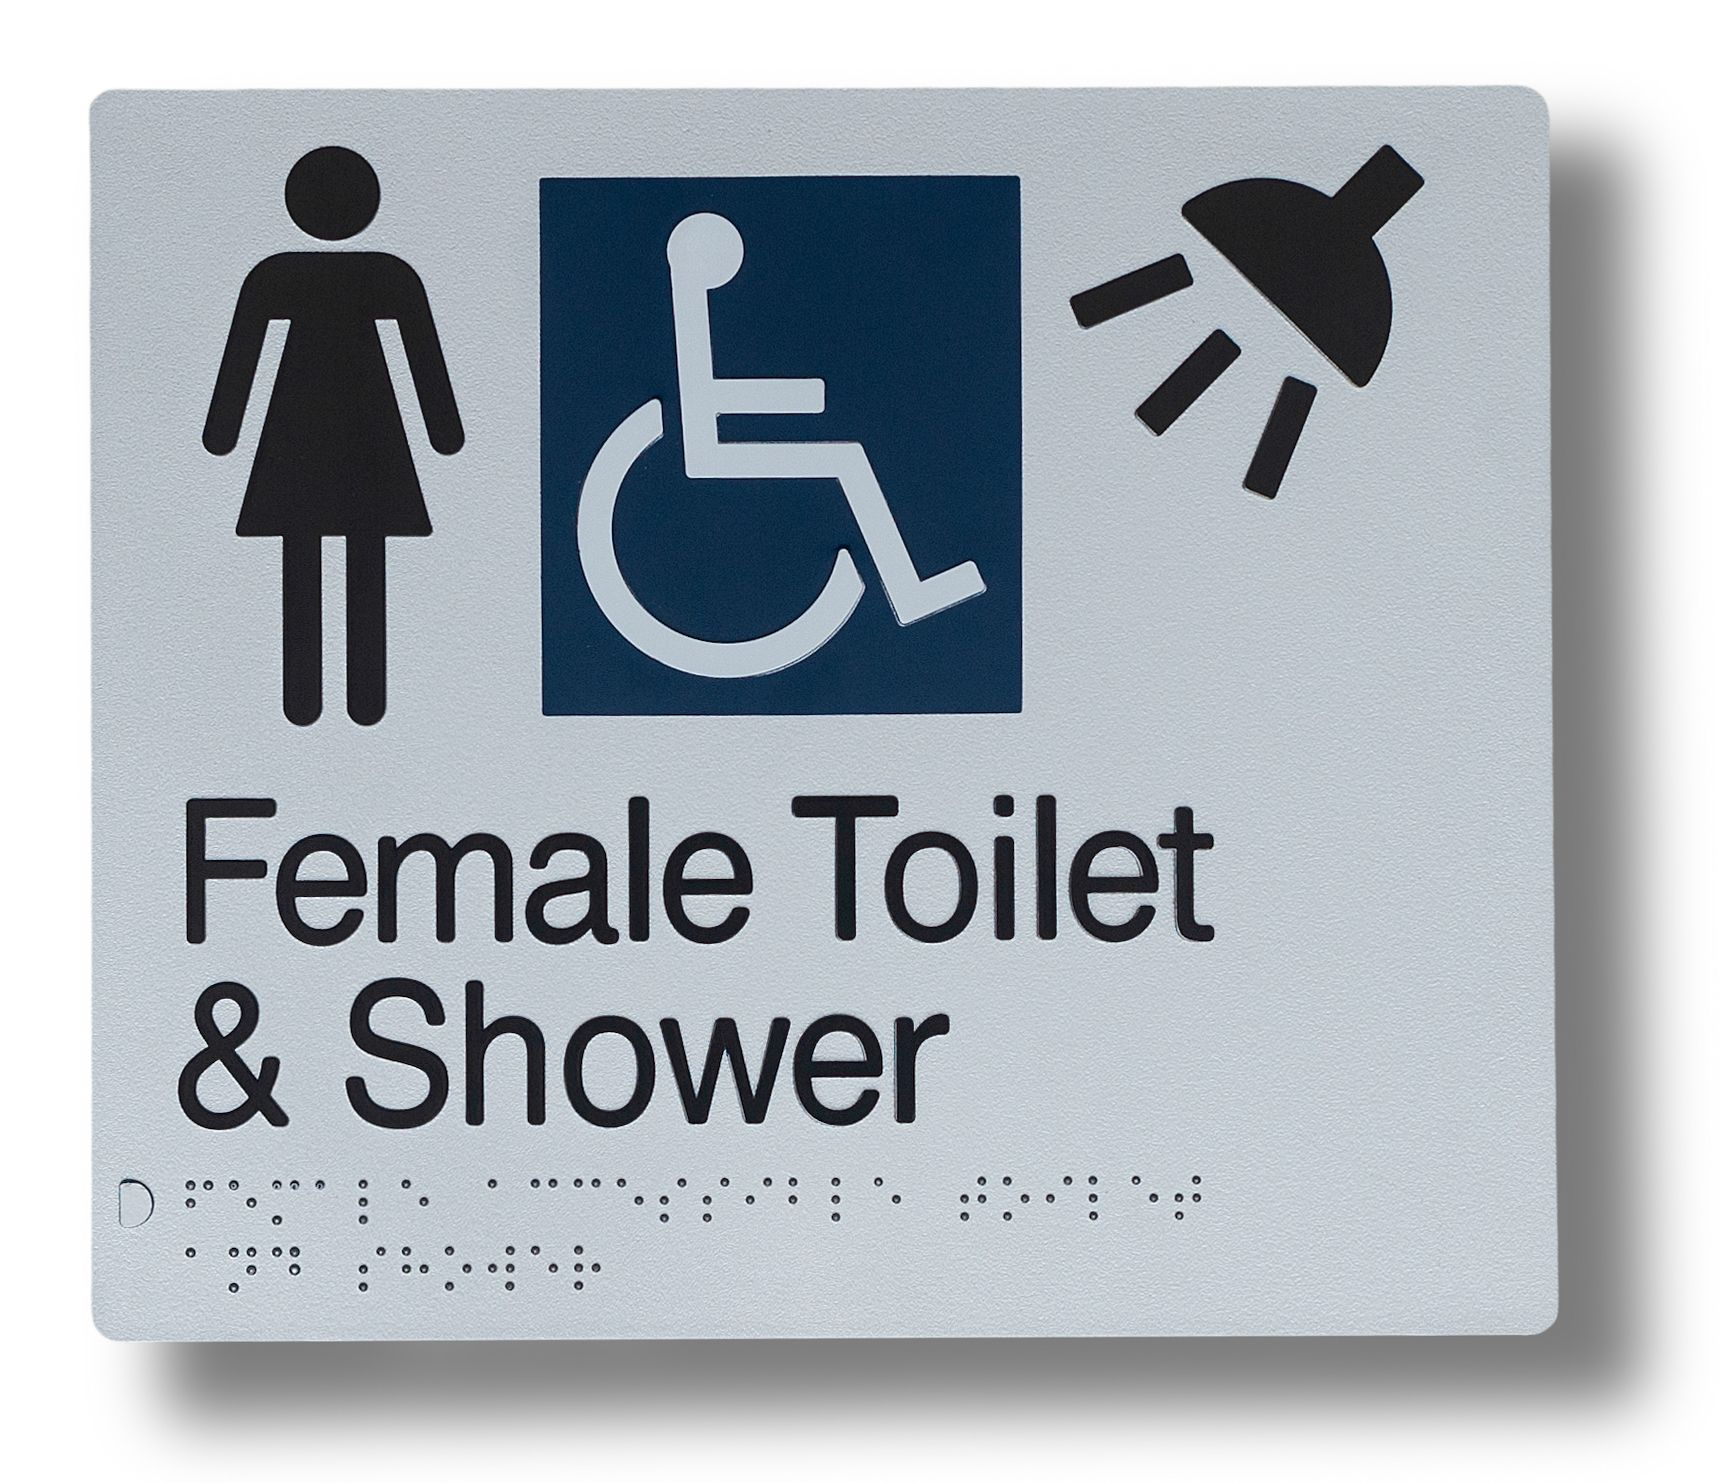 Braille sign - Female toilet and shower